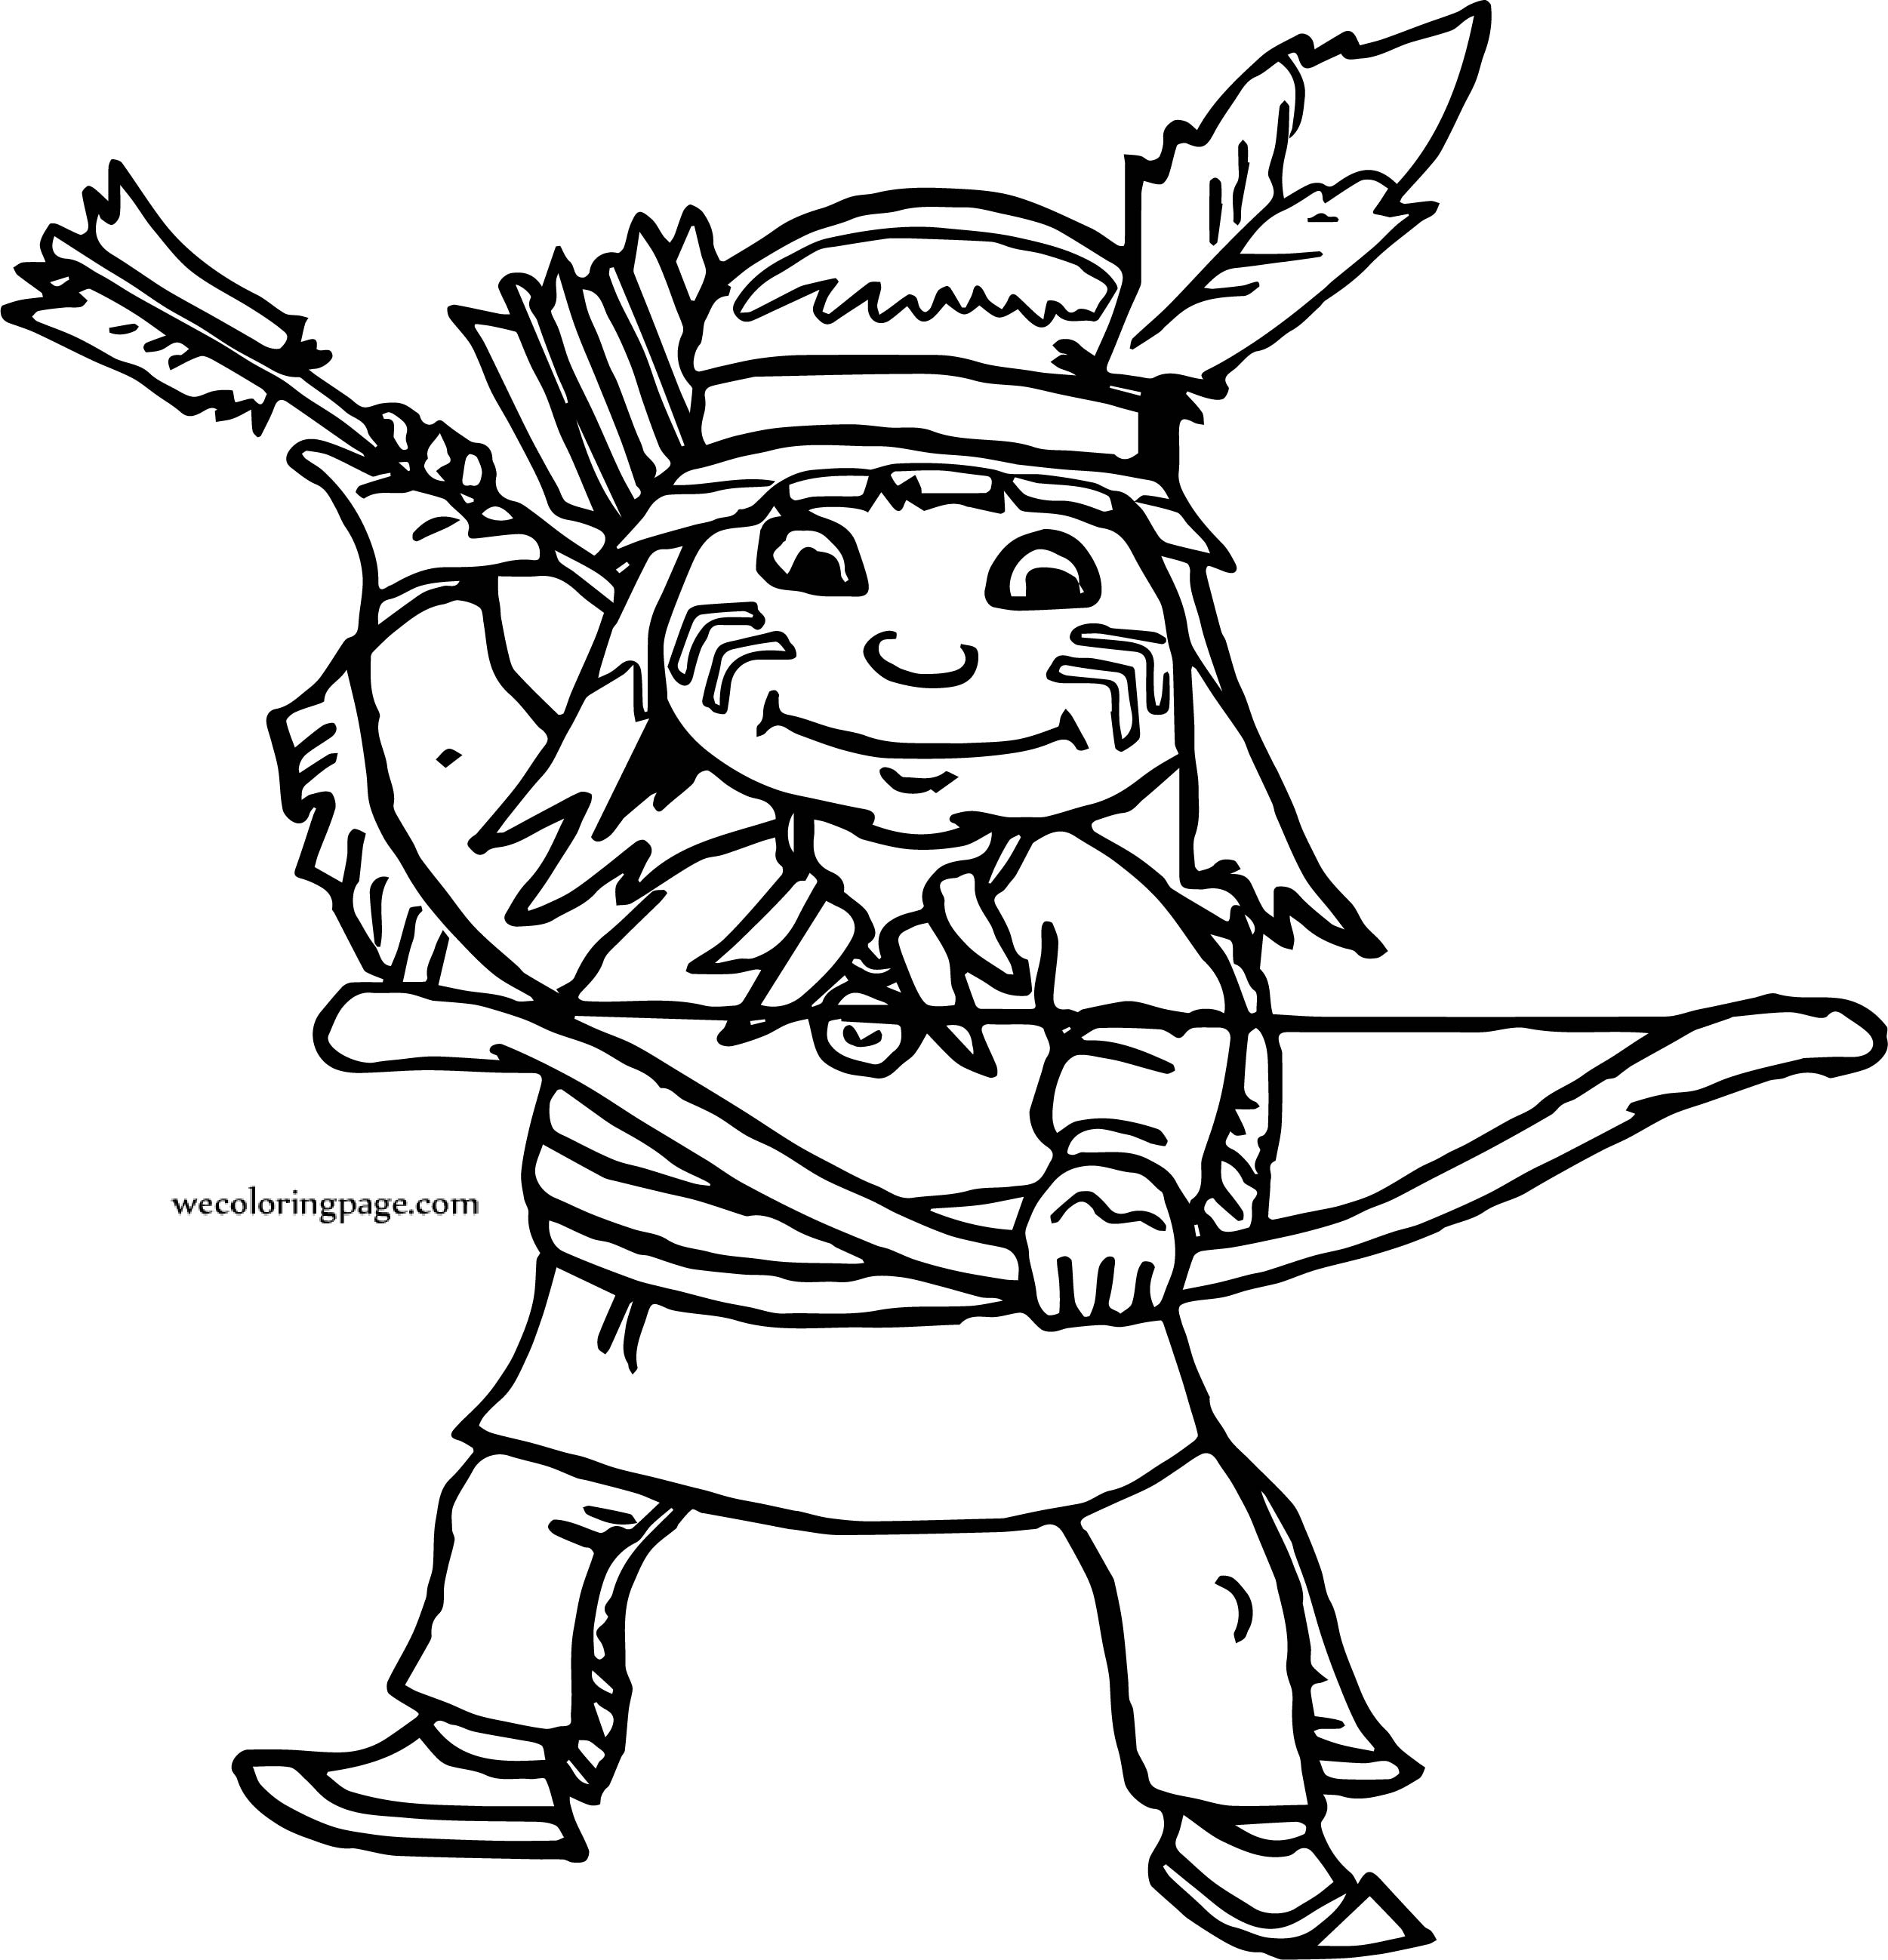 archer girl boy coloring page wecoloringpage com